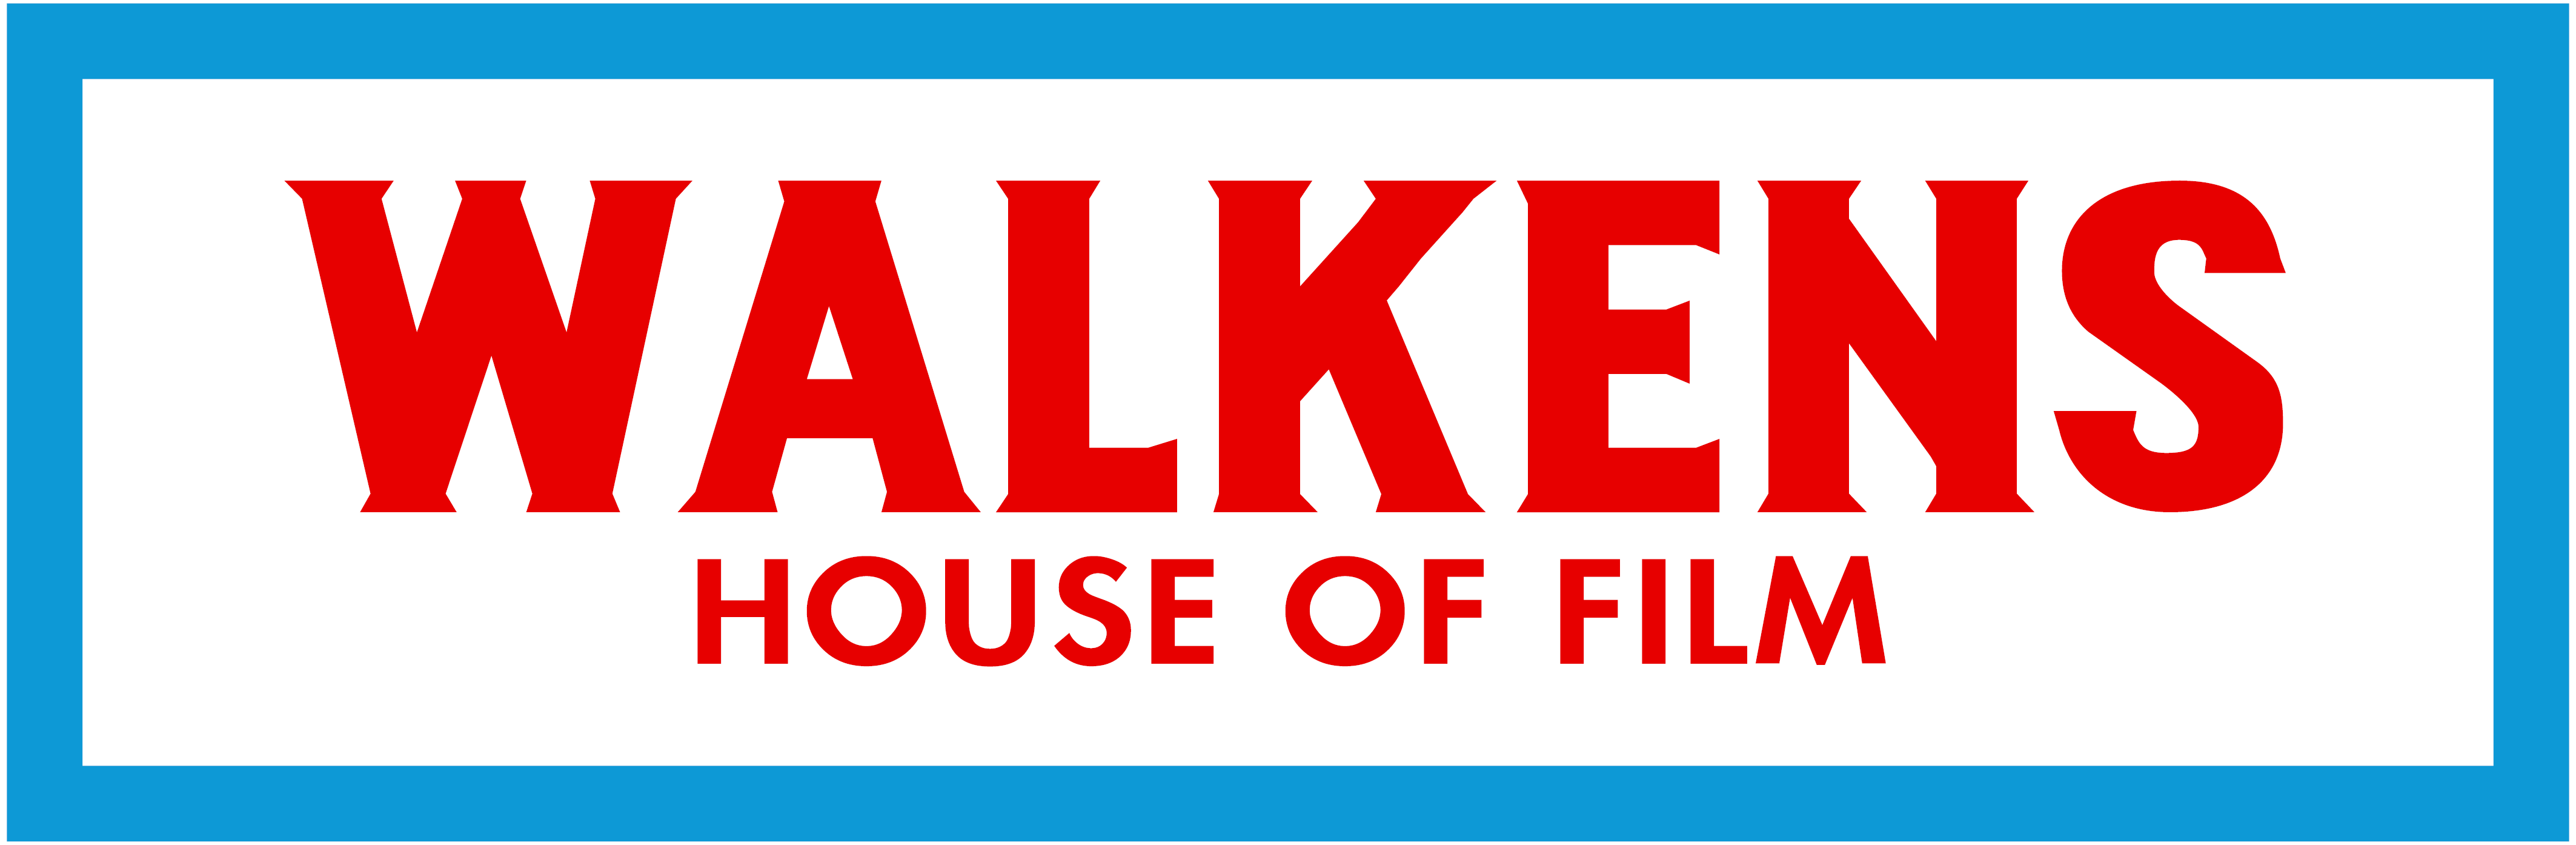 WALKENS House of Film